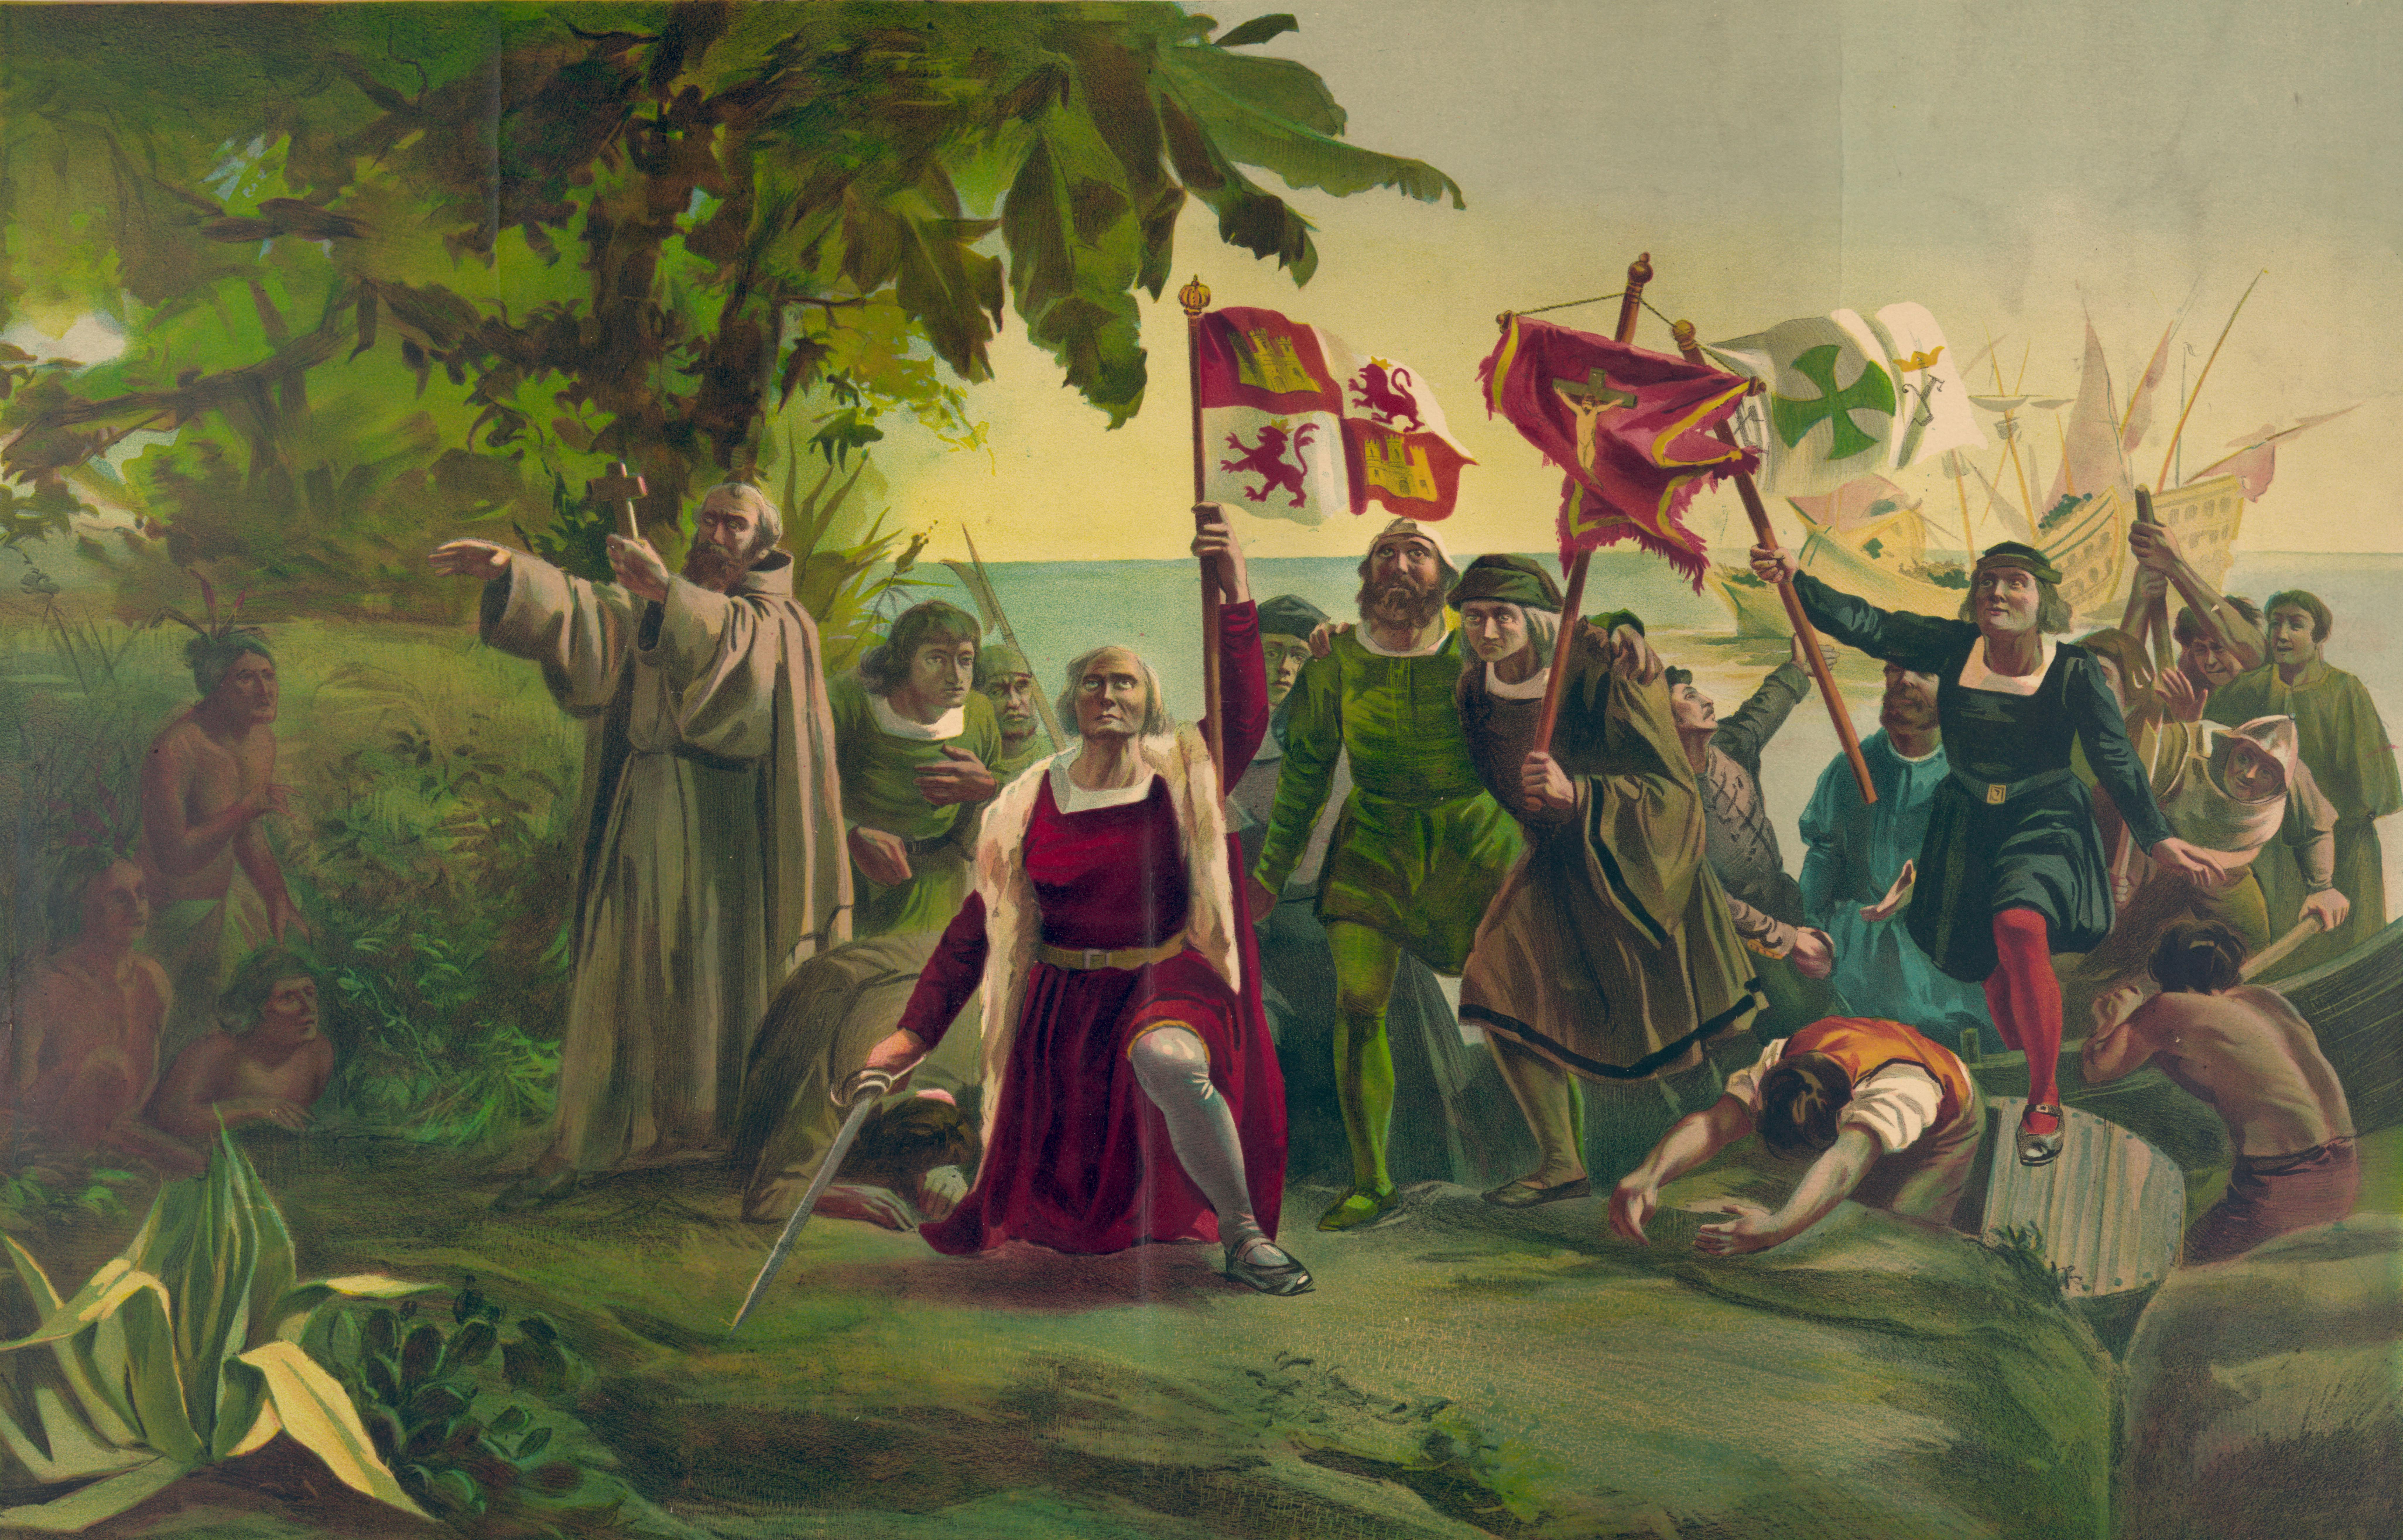 Discovery of the New World by Christopher Columbus